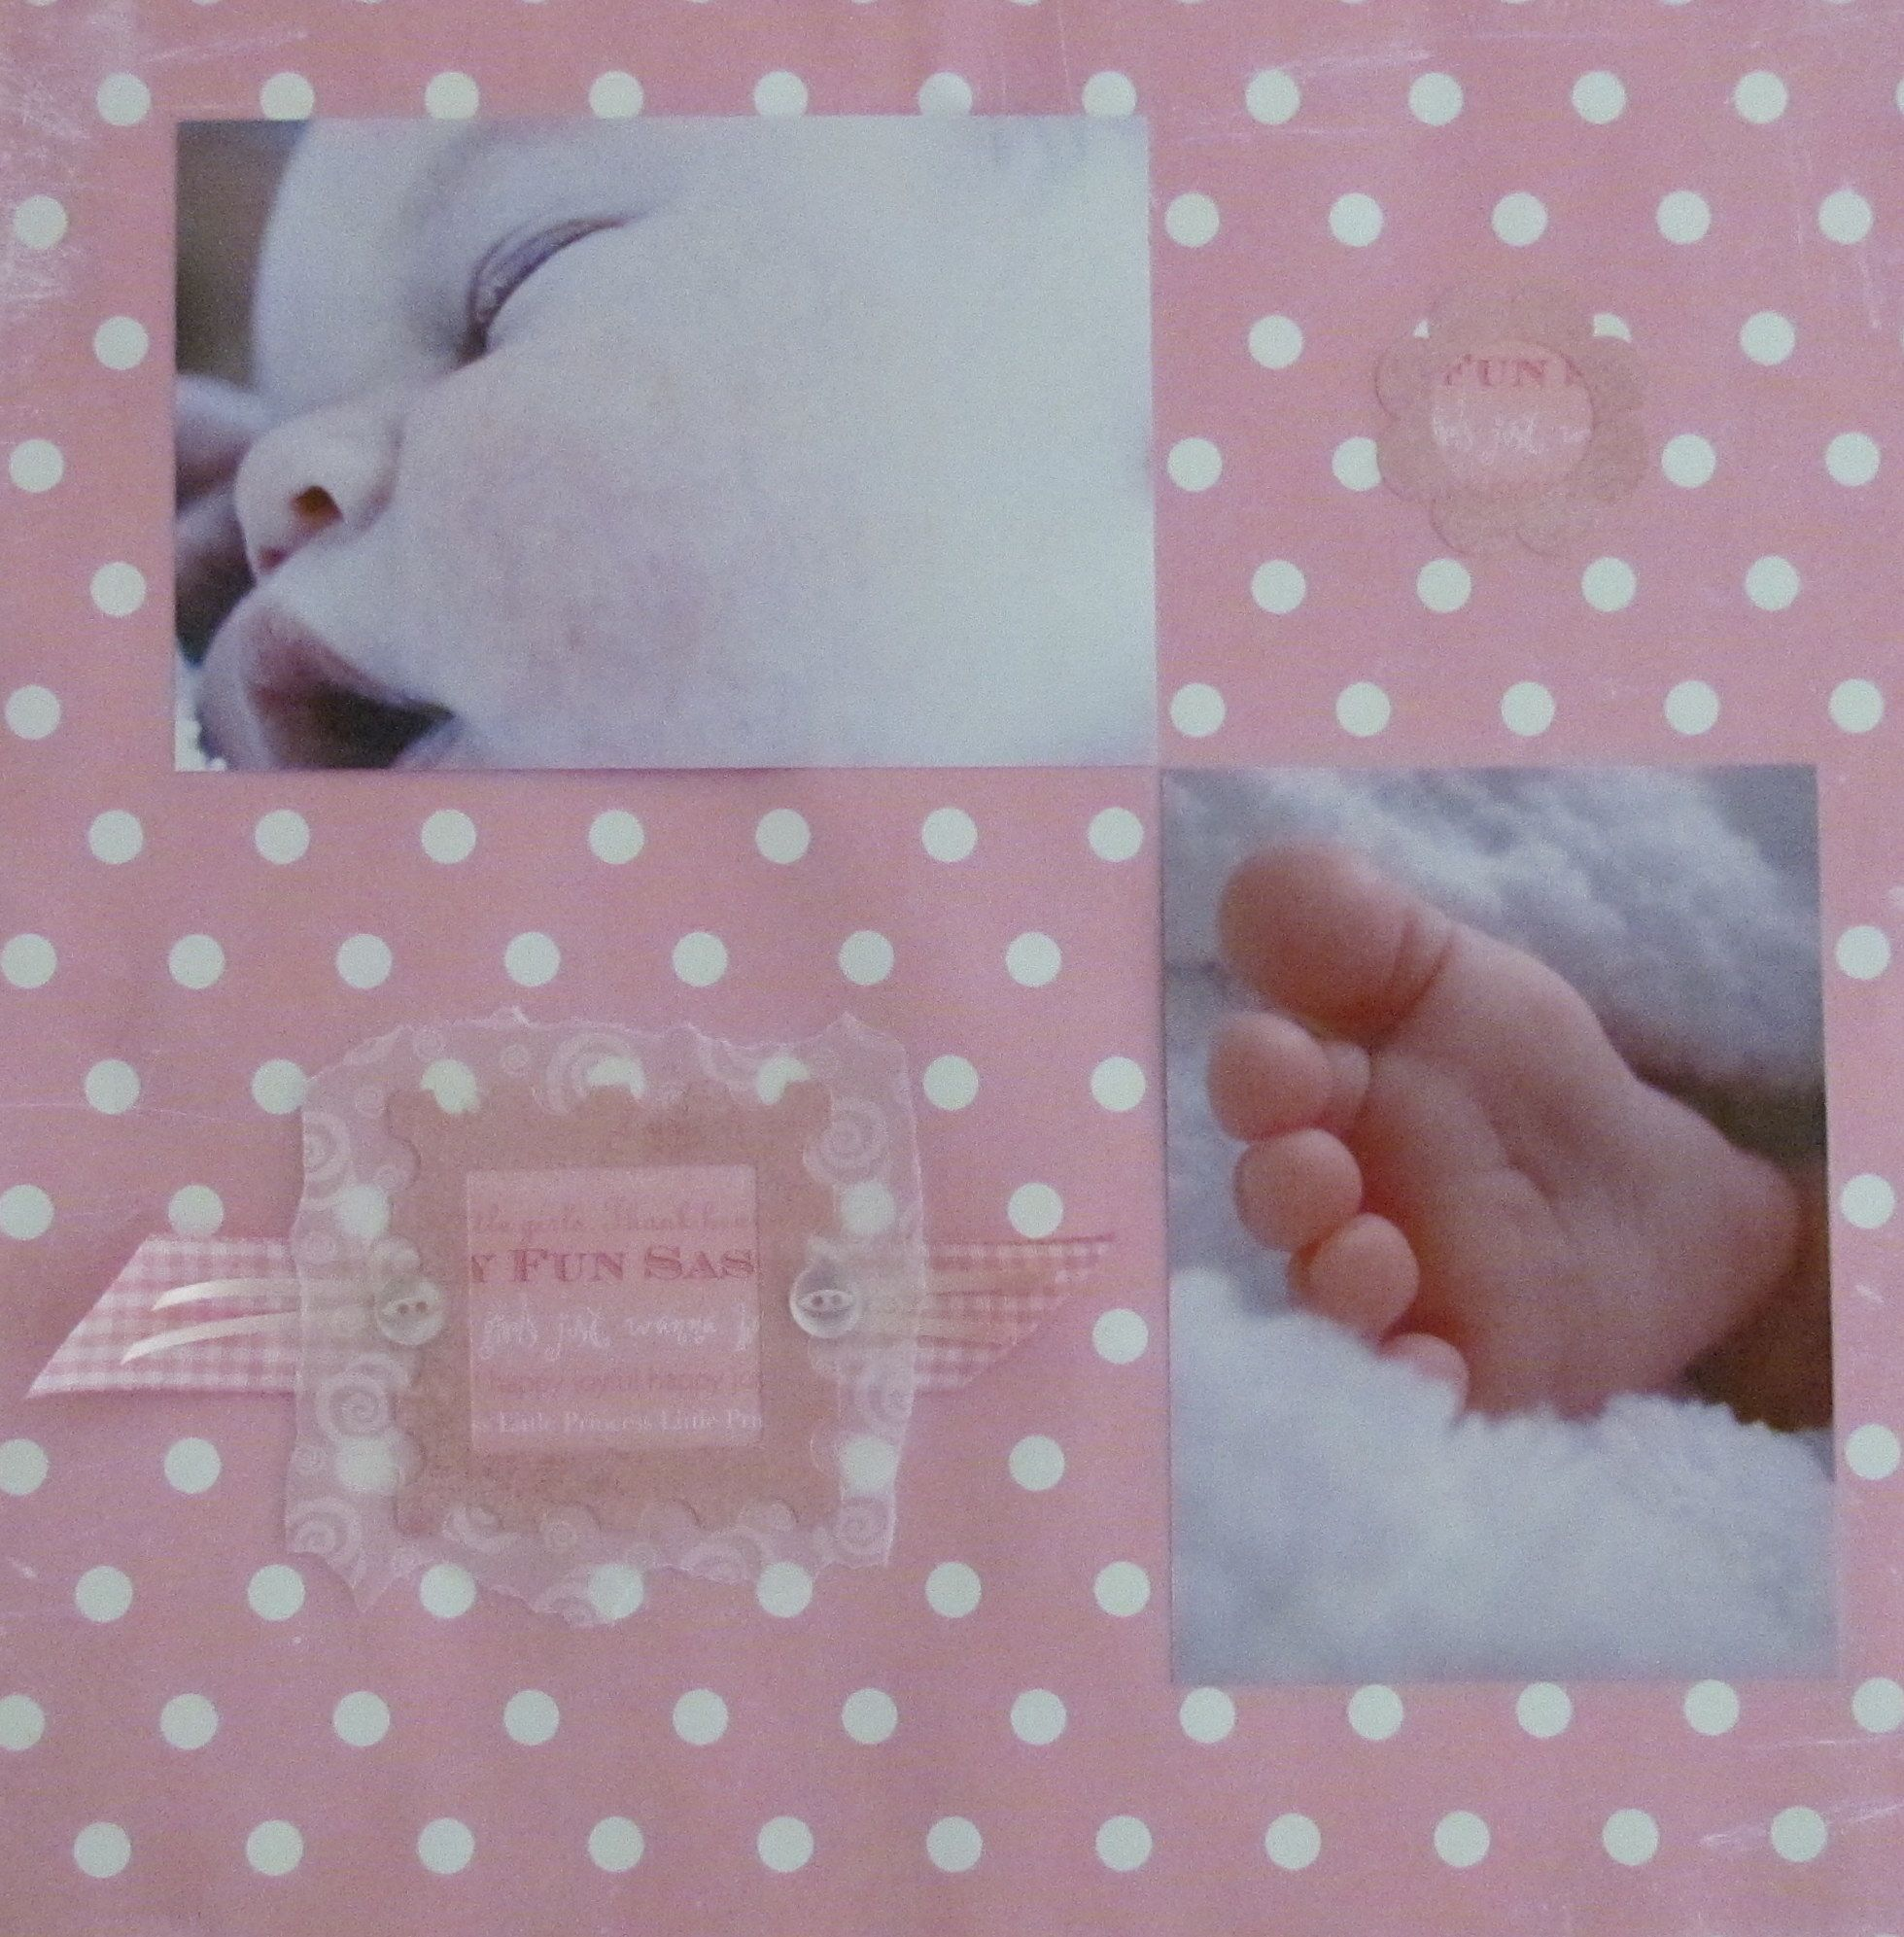 For new dads, what better way to start off a tradition than give a scrapbook page with photos of the new baby. We could make a new page each Fathers Day with an updated photo and help create a scrapbook album that would grow alongside the children. www.thememorycompany.co.uk for personalised scrapbooks